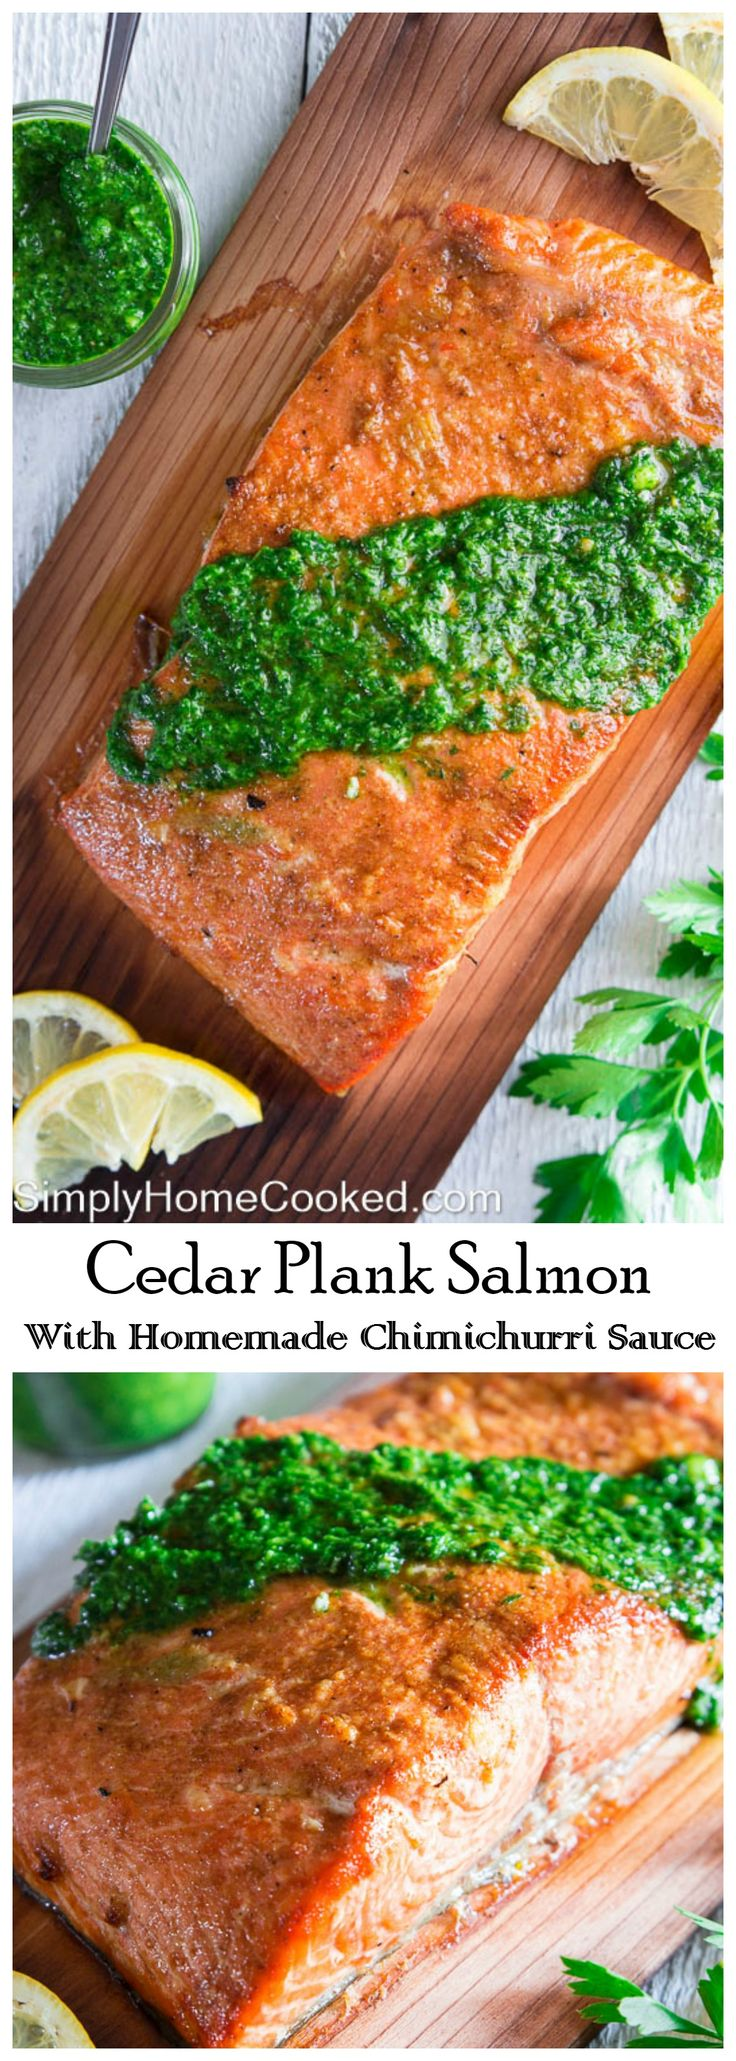 Grilled cedar plank salmon with homemade chimichurri sauce.